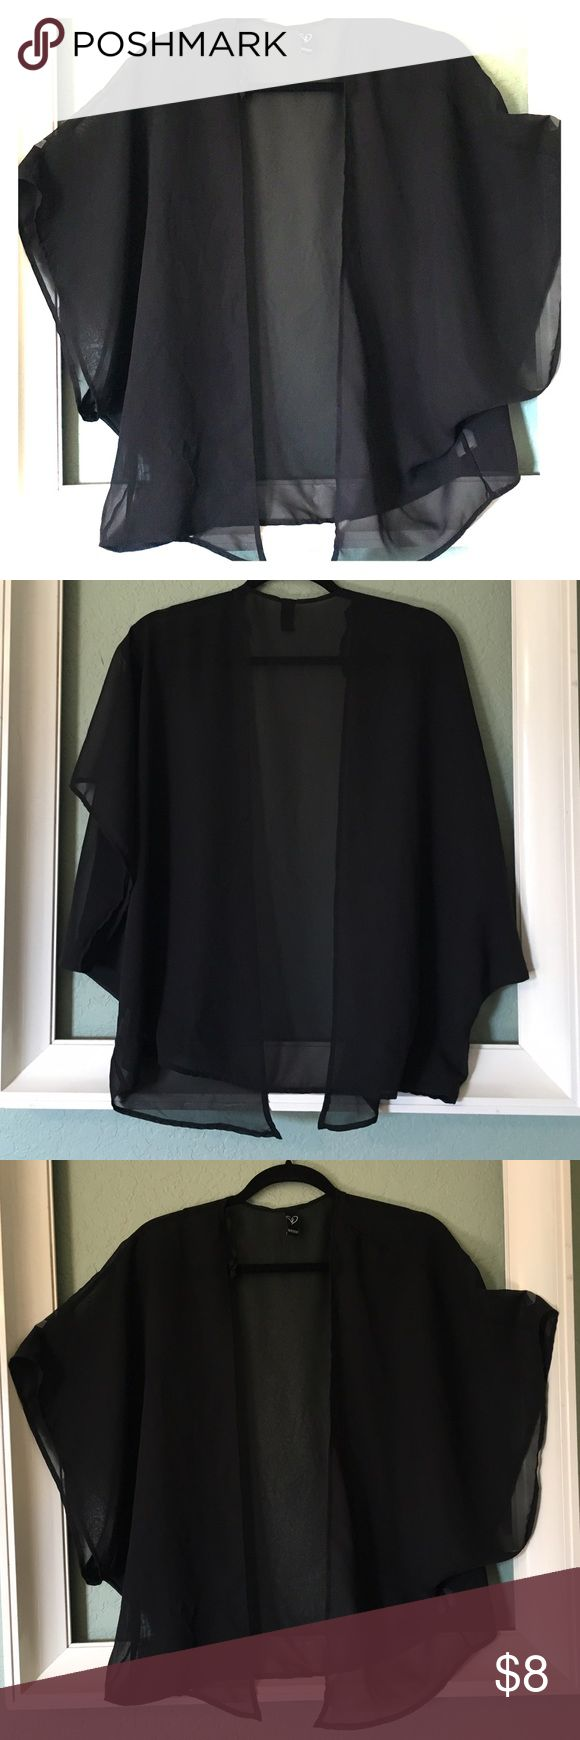 Windsor Sheer Black Flowy Cover Up Windsor Sheer Black Cover Up ~ Flowy Blouse With Wide Sleeves ~ 100% Polyester ~ Size Medium Windsor Tops